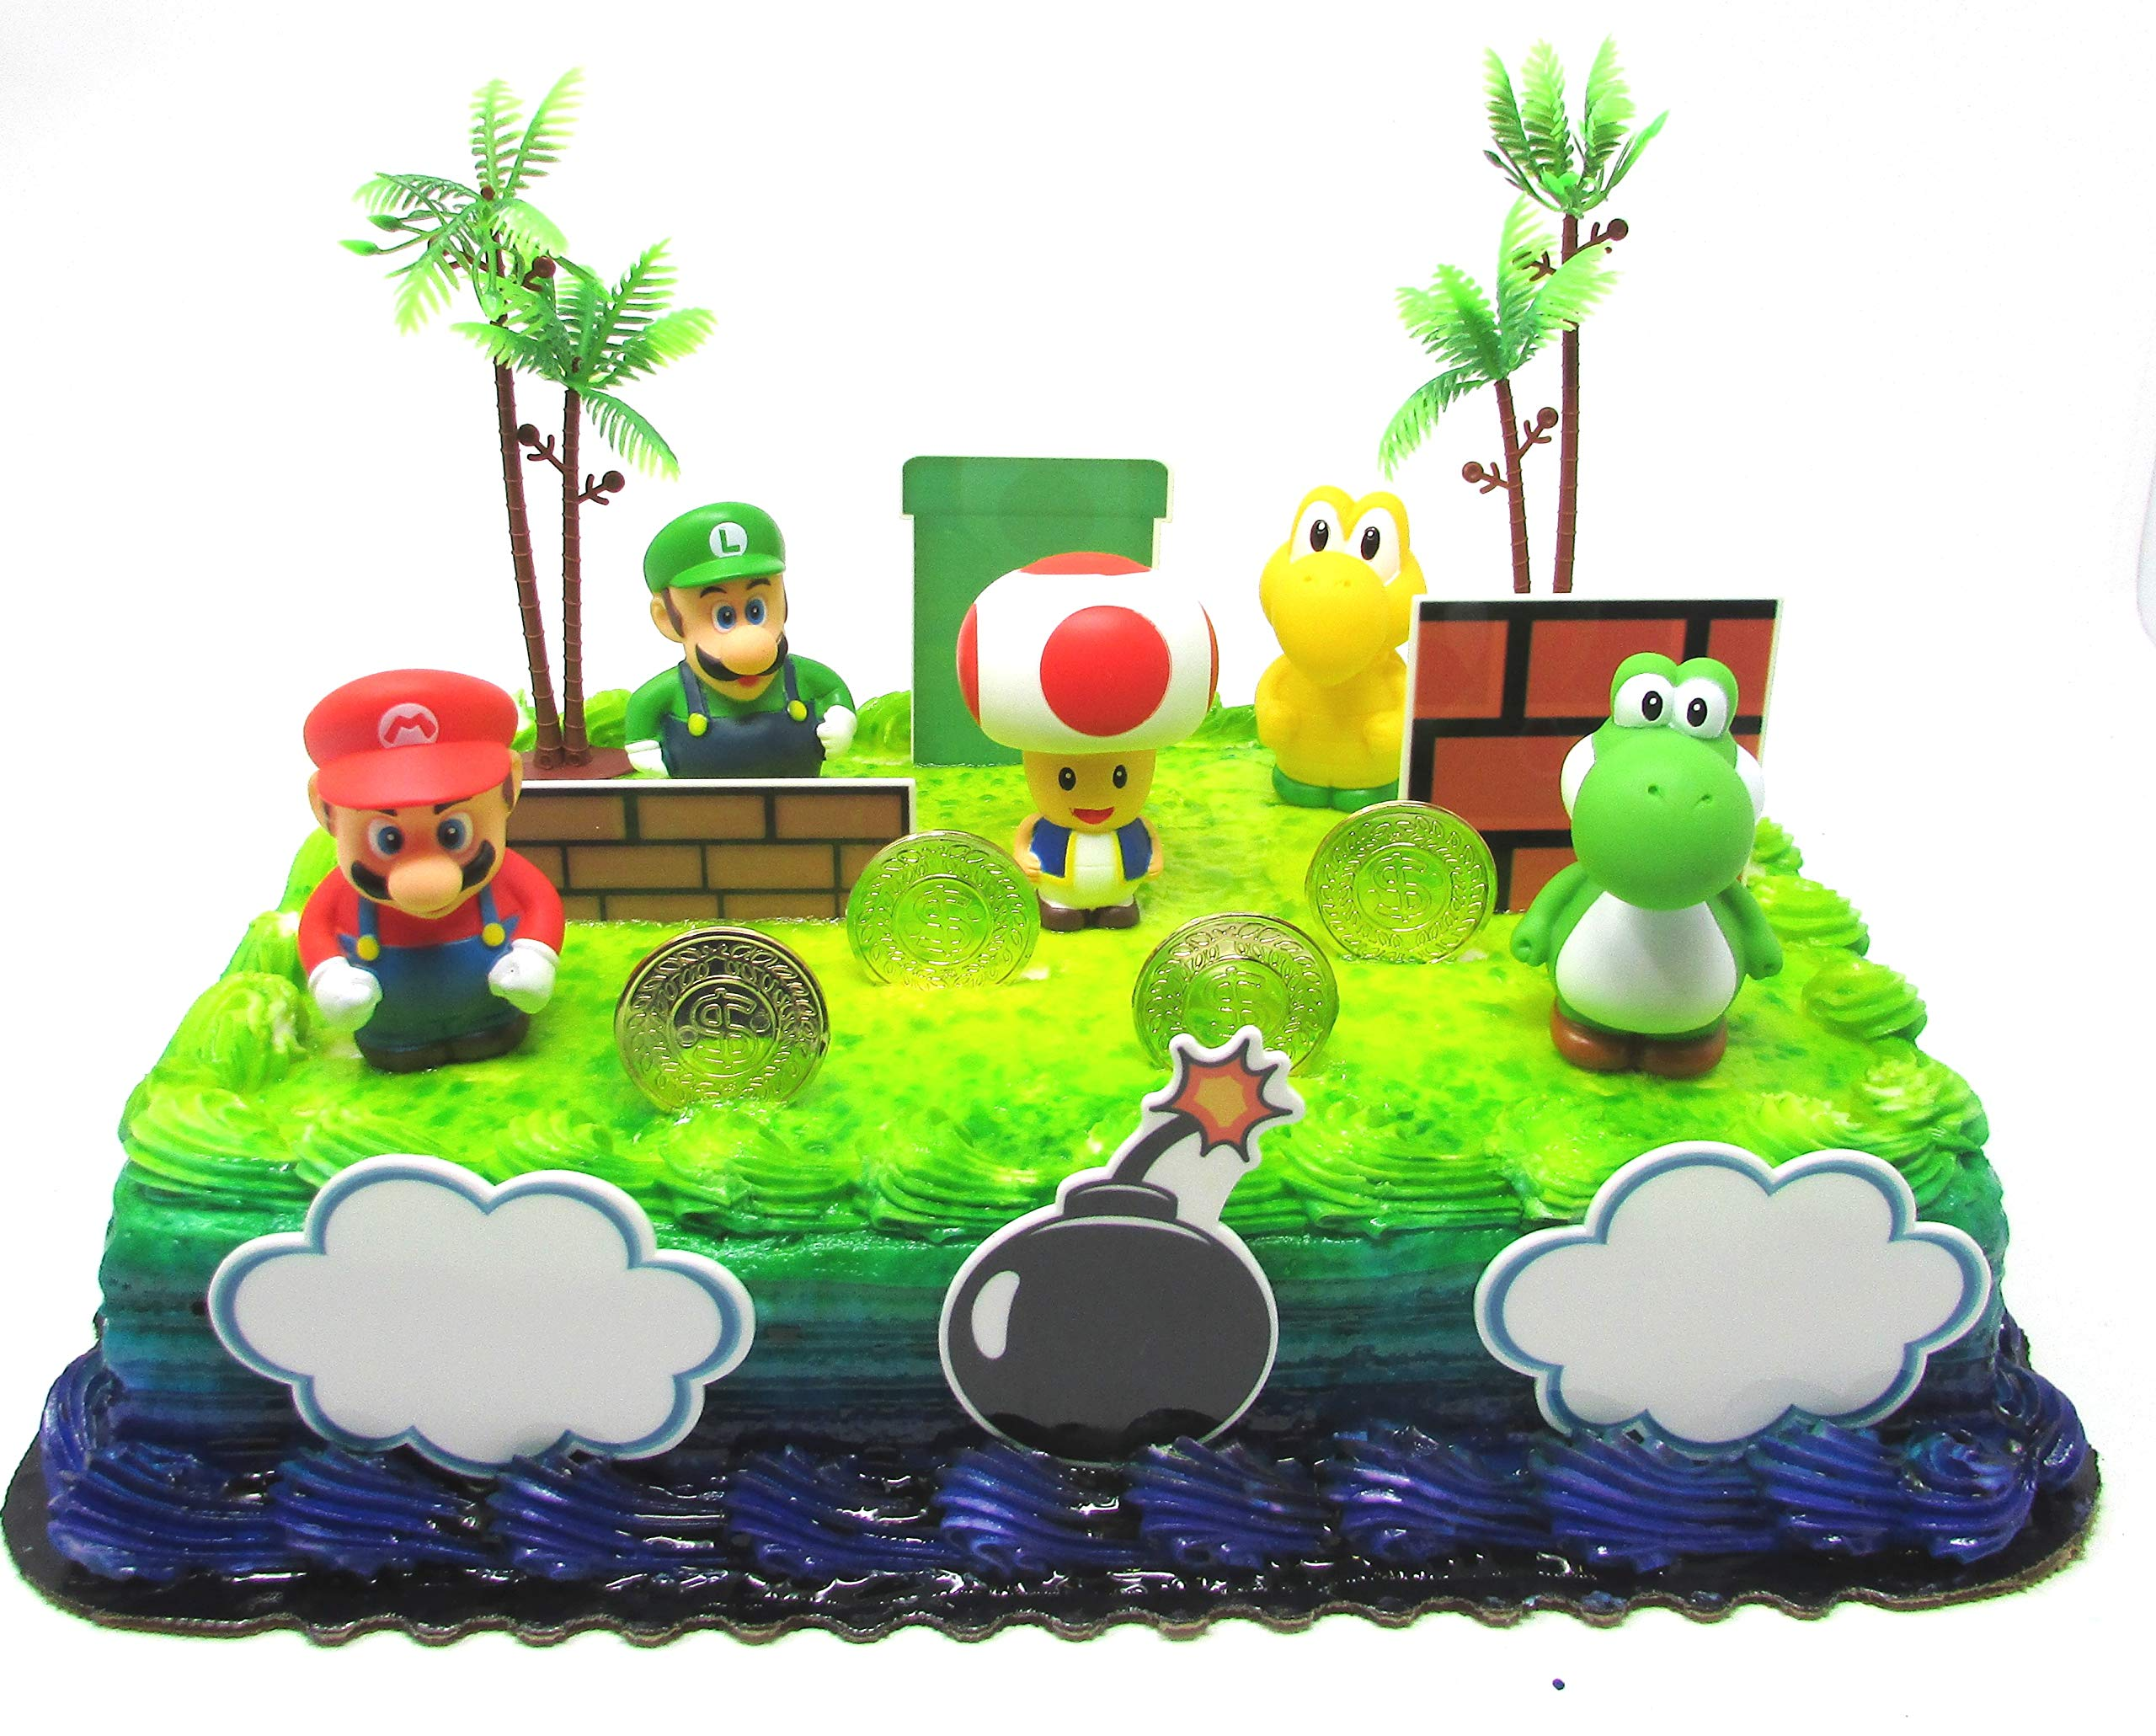 Super Mario Brothers Birthday Cake Toper Set Featuring Mario, Luigi, Toad, Yoshi and Decorative Themed Accessories by Celebration Events